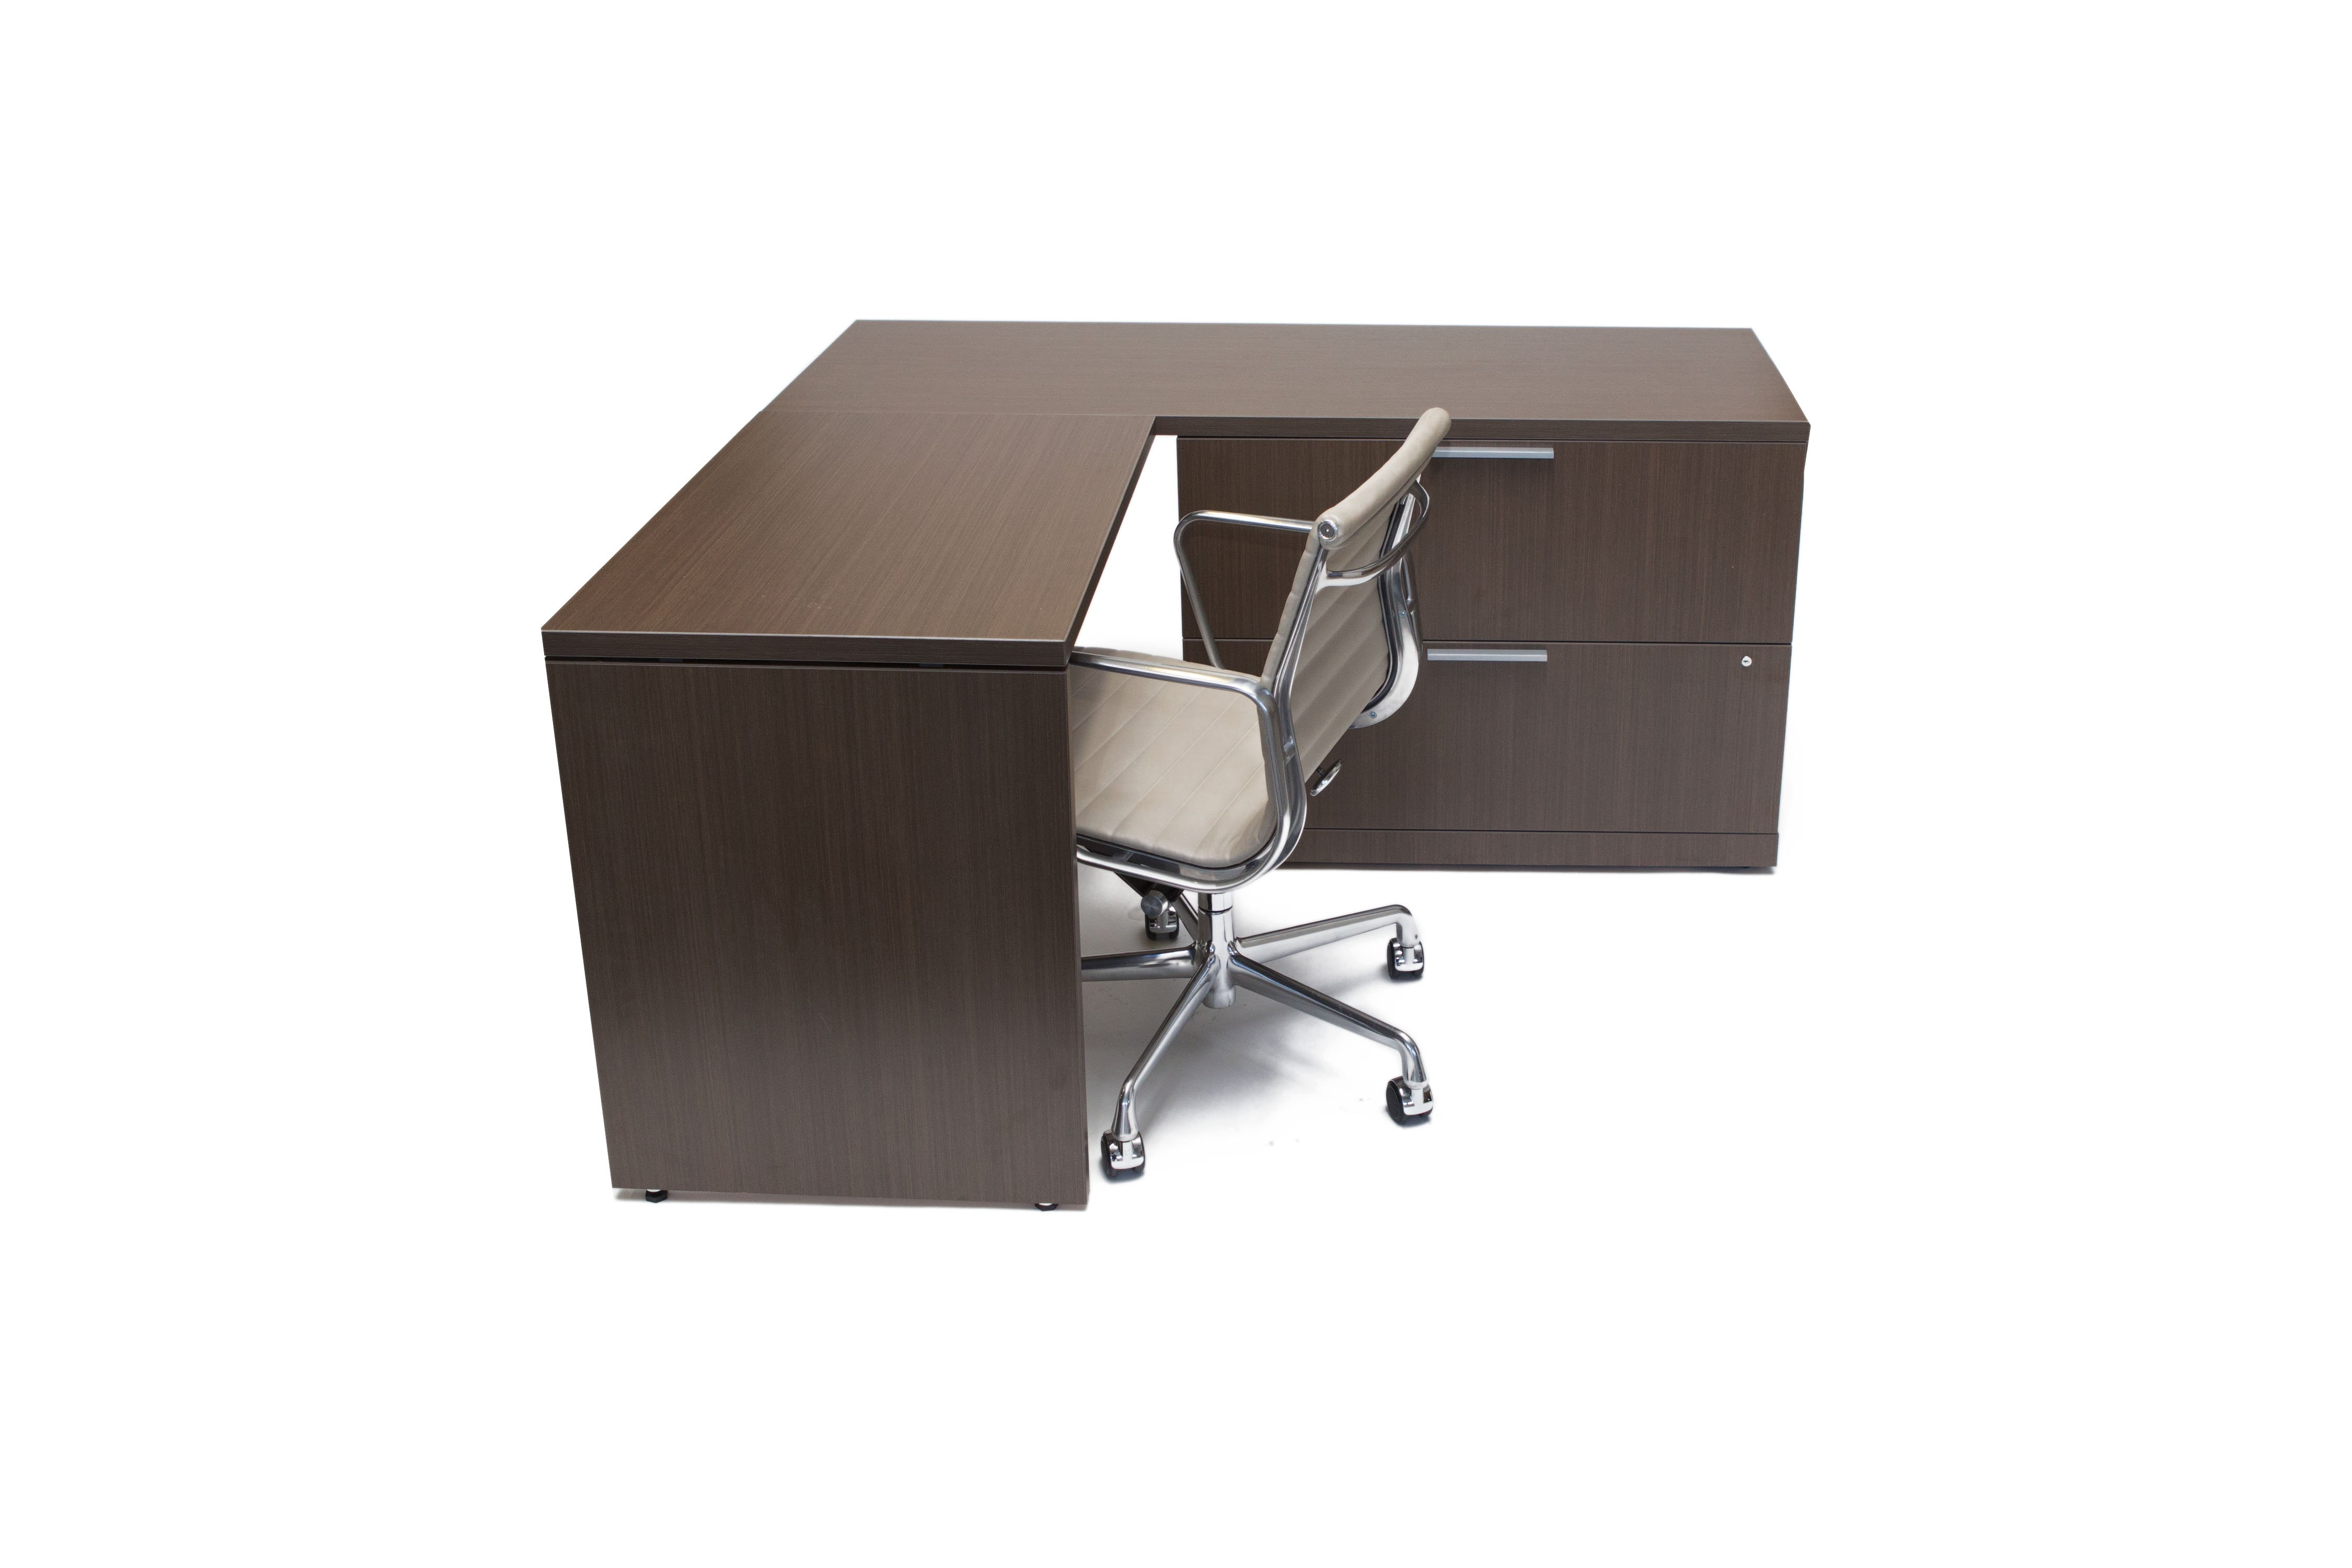 Bureau Stopcontact Office Furniture Products Available Office Outlet